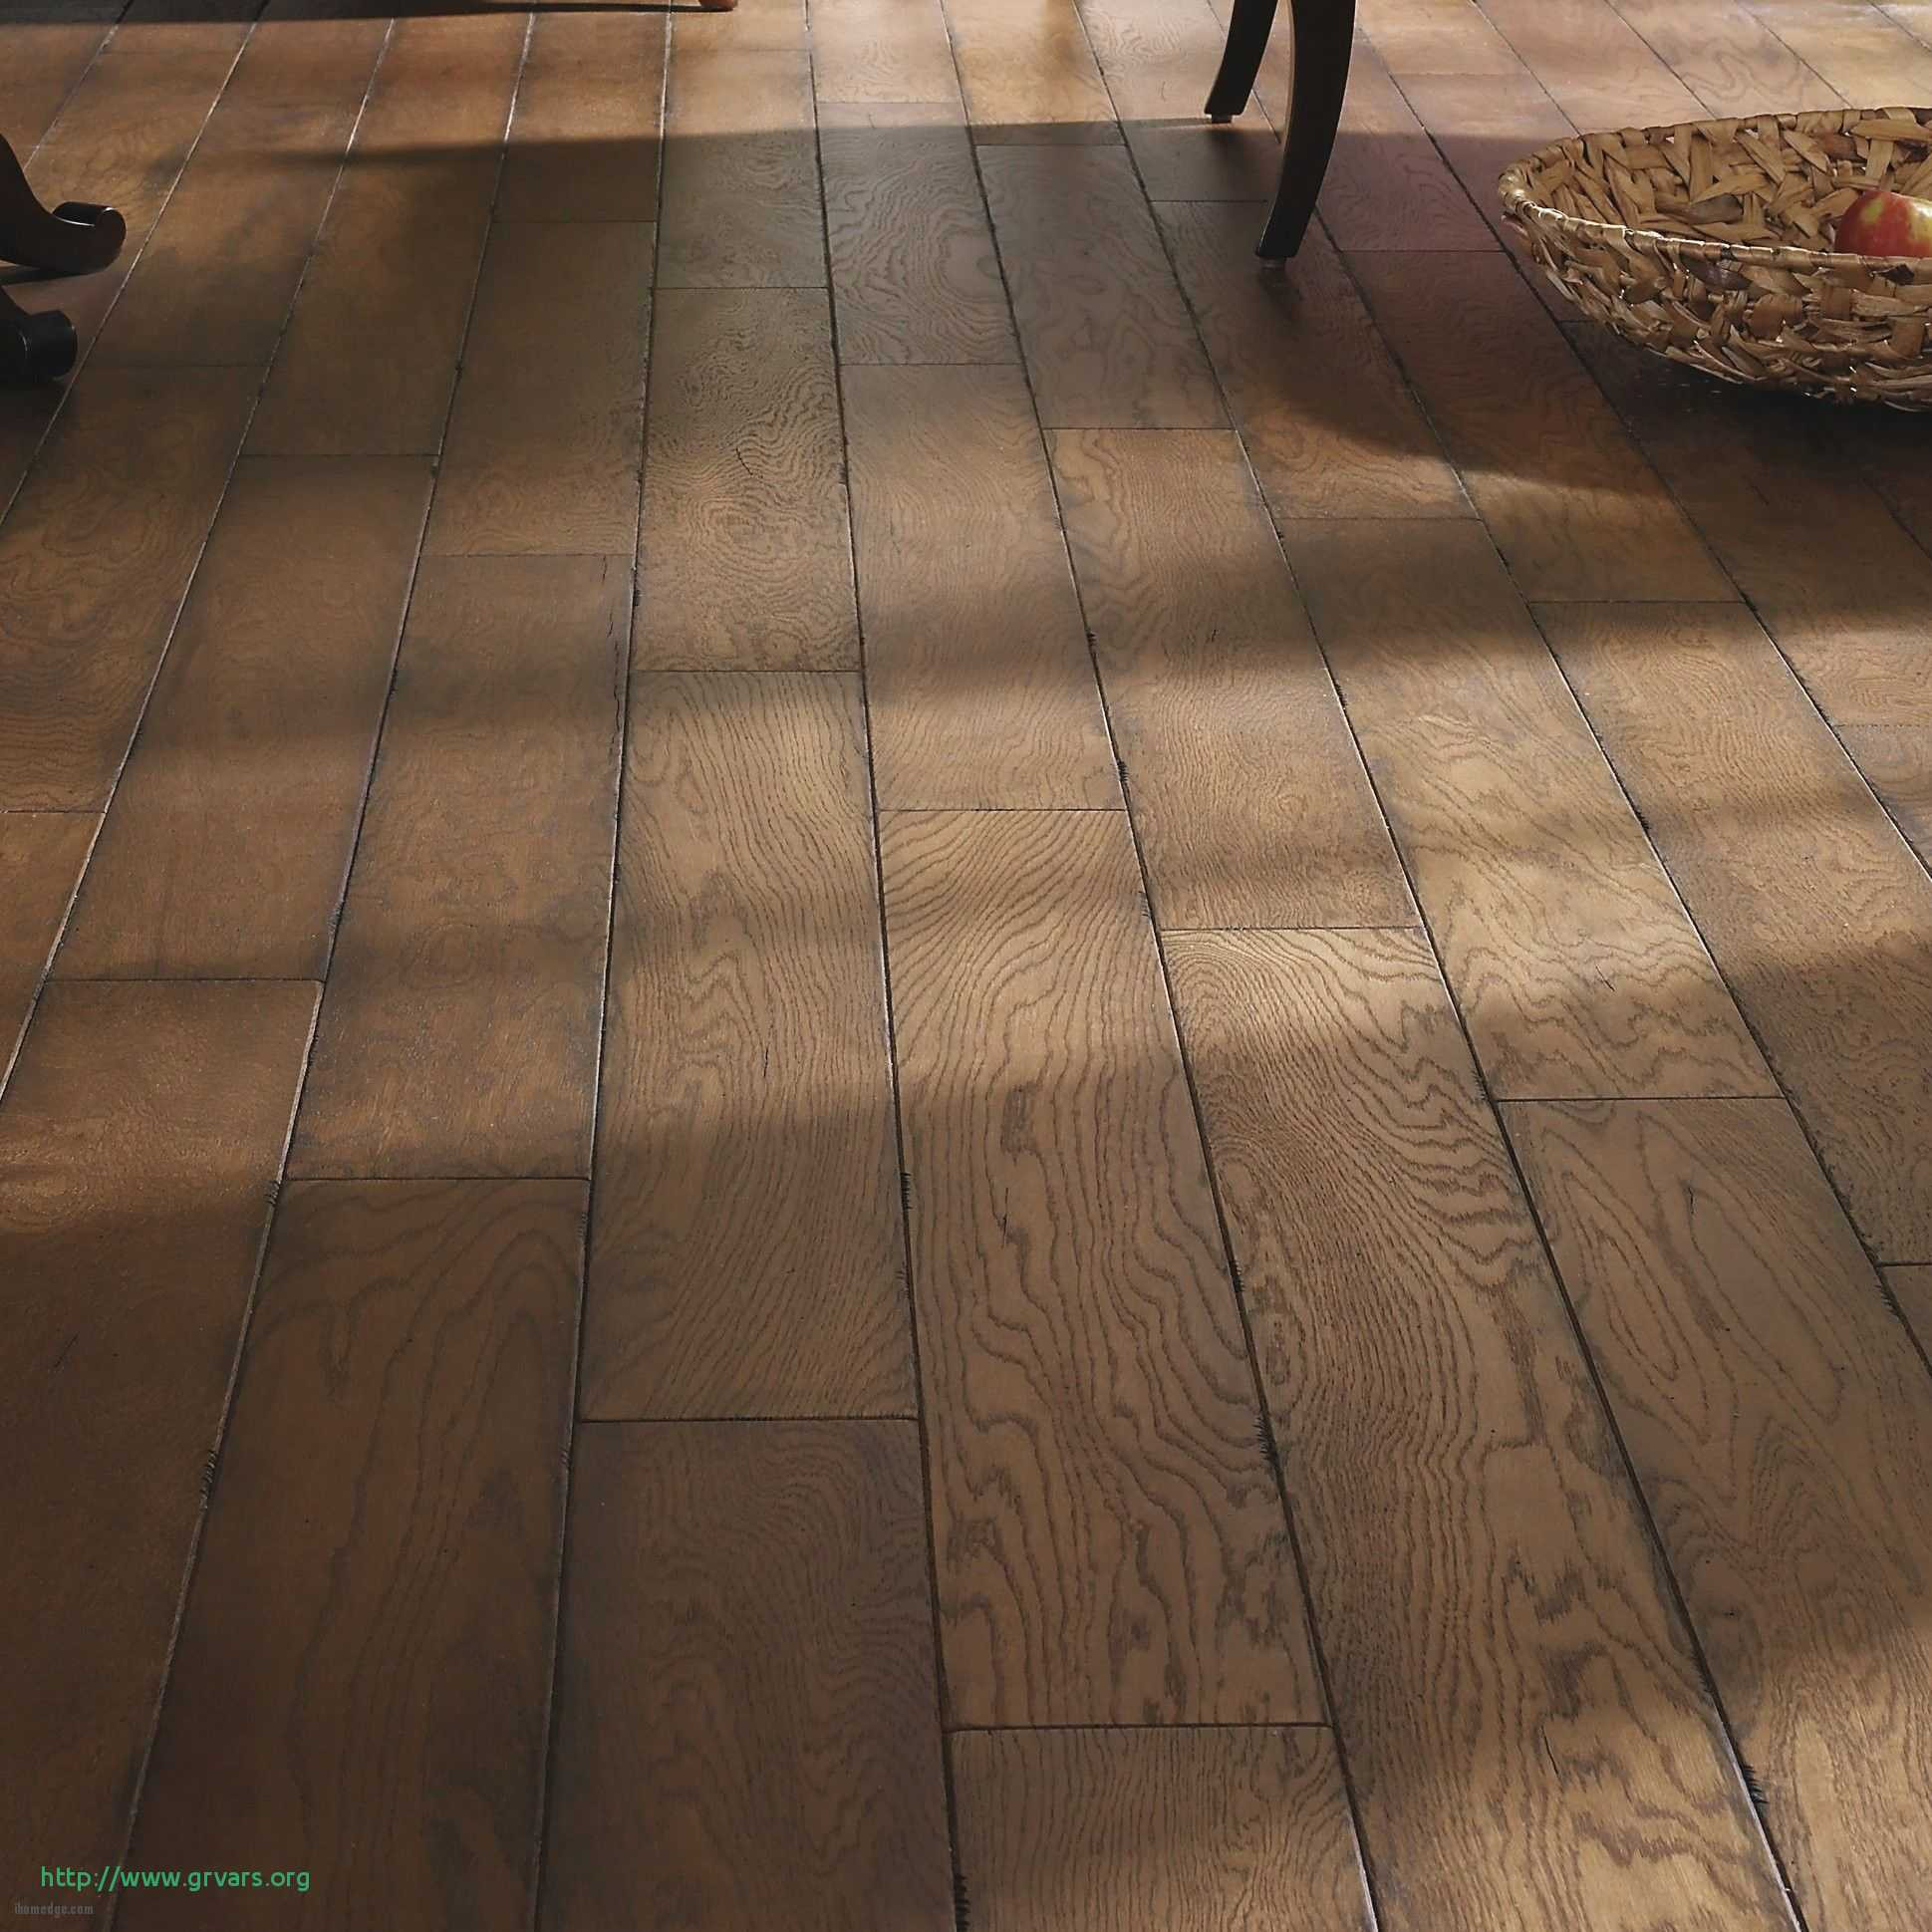 mullican vs bruce hardwood flooring of 15 charmant how to buy engineered hardwood flooring ideas blog regarding cool lovely white oak hardwood flooring easoon usa 5 engineered white oak hardwood flooring in ar